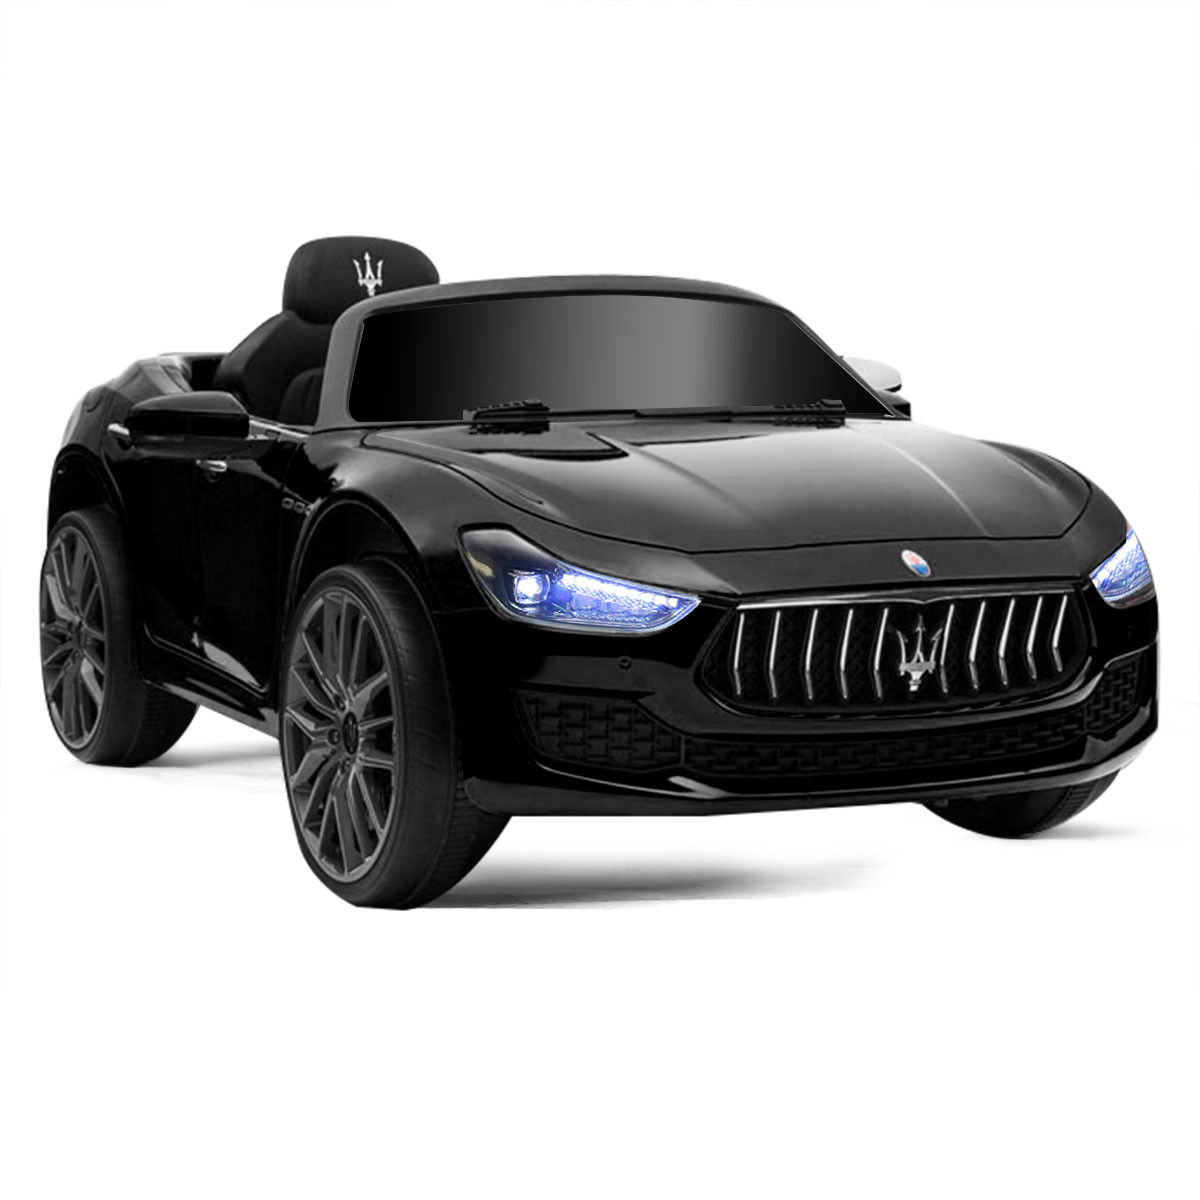 Gymax 12V Maserati Licensed Kids Ride on Car w/ RC Remote Control Led Lights MP3 Black